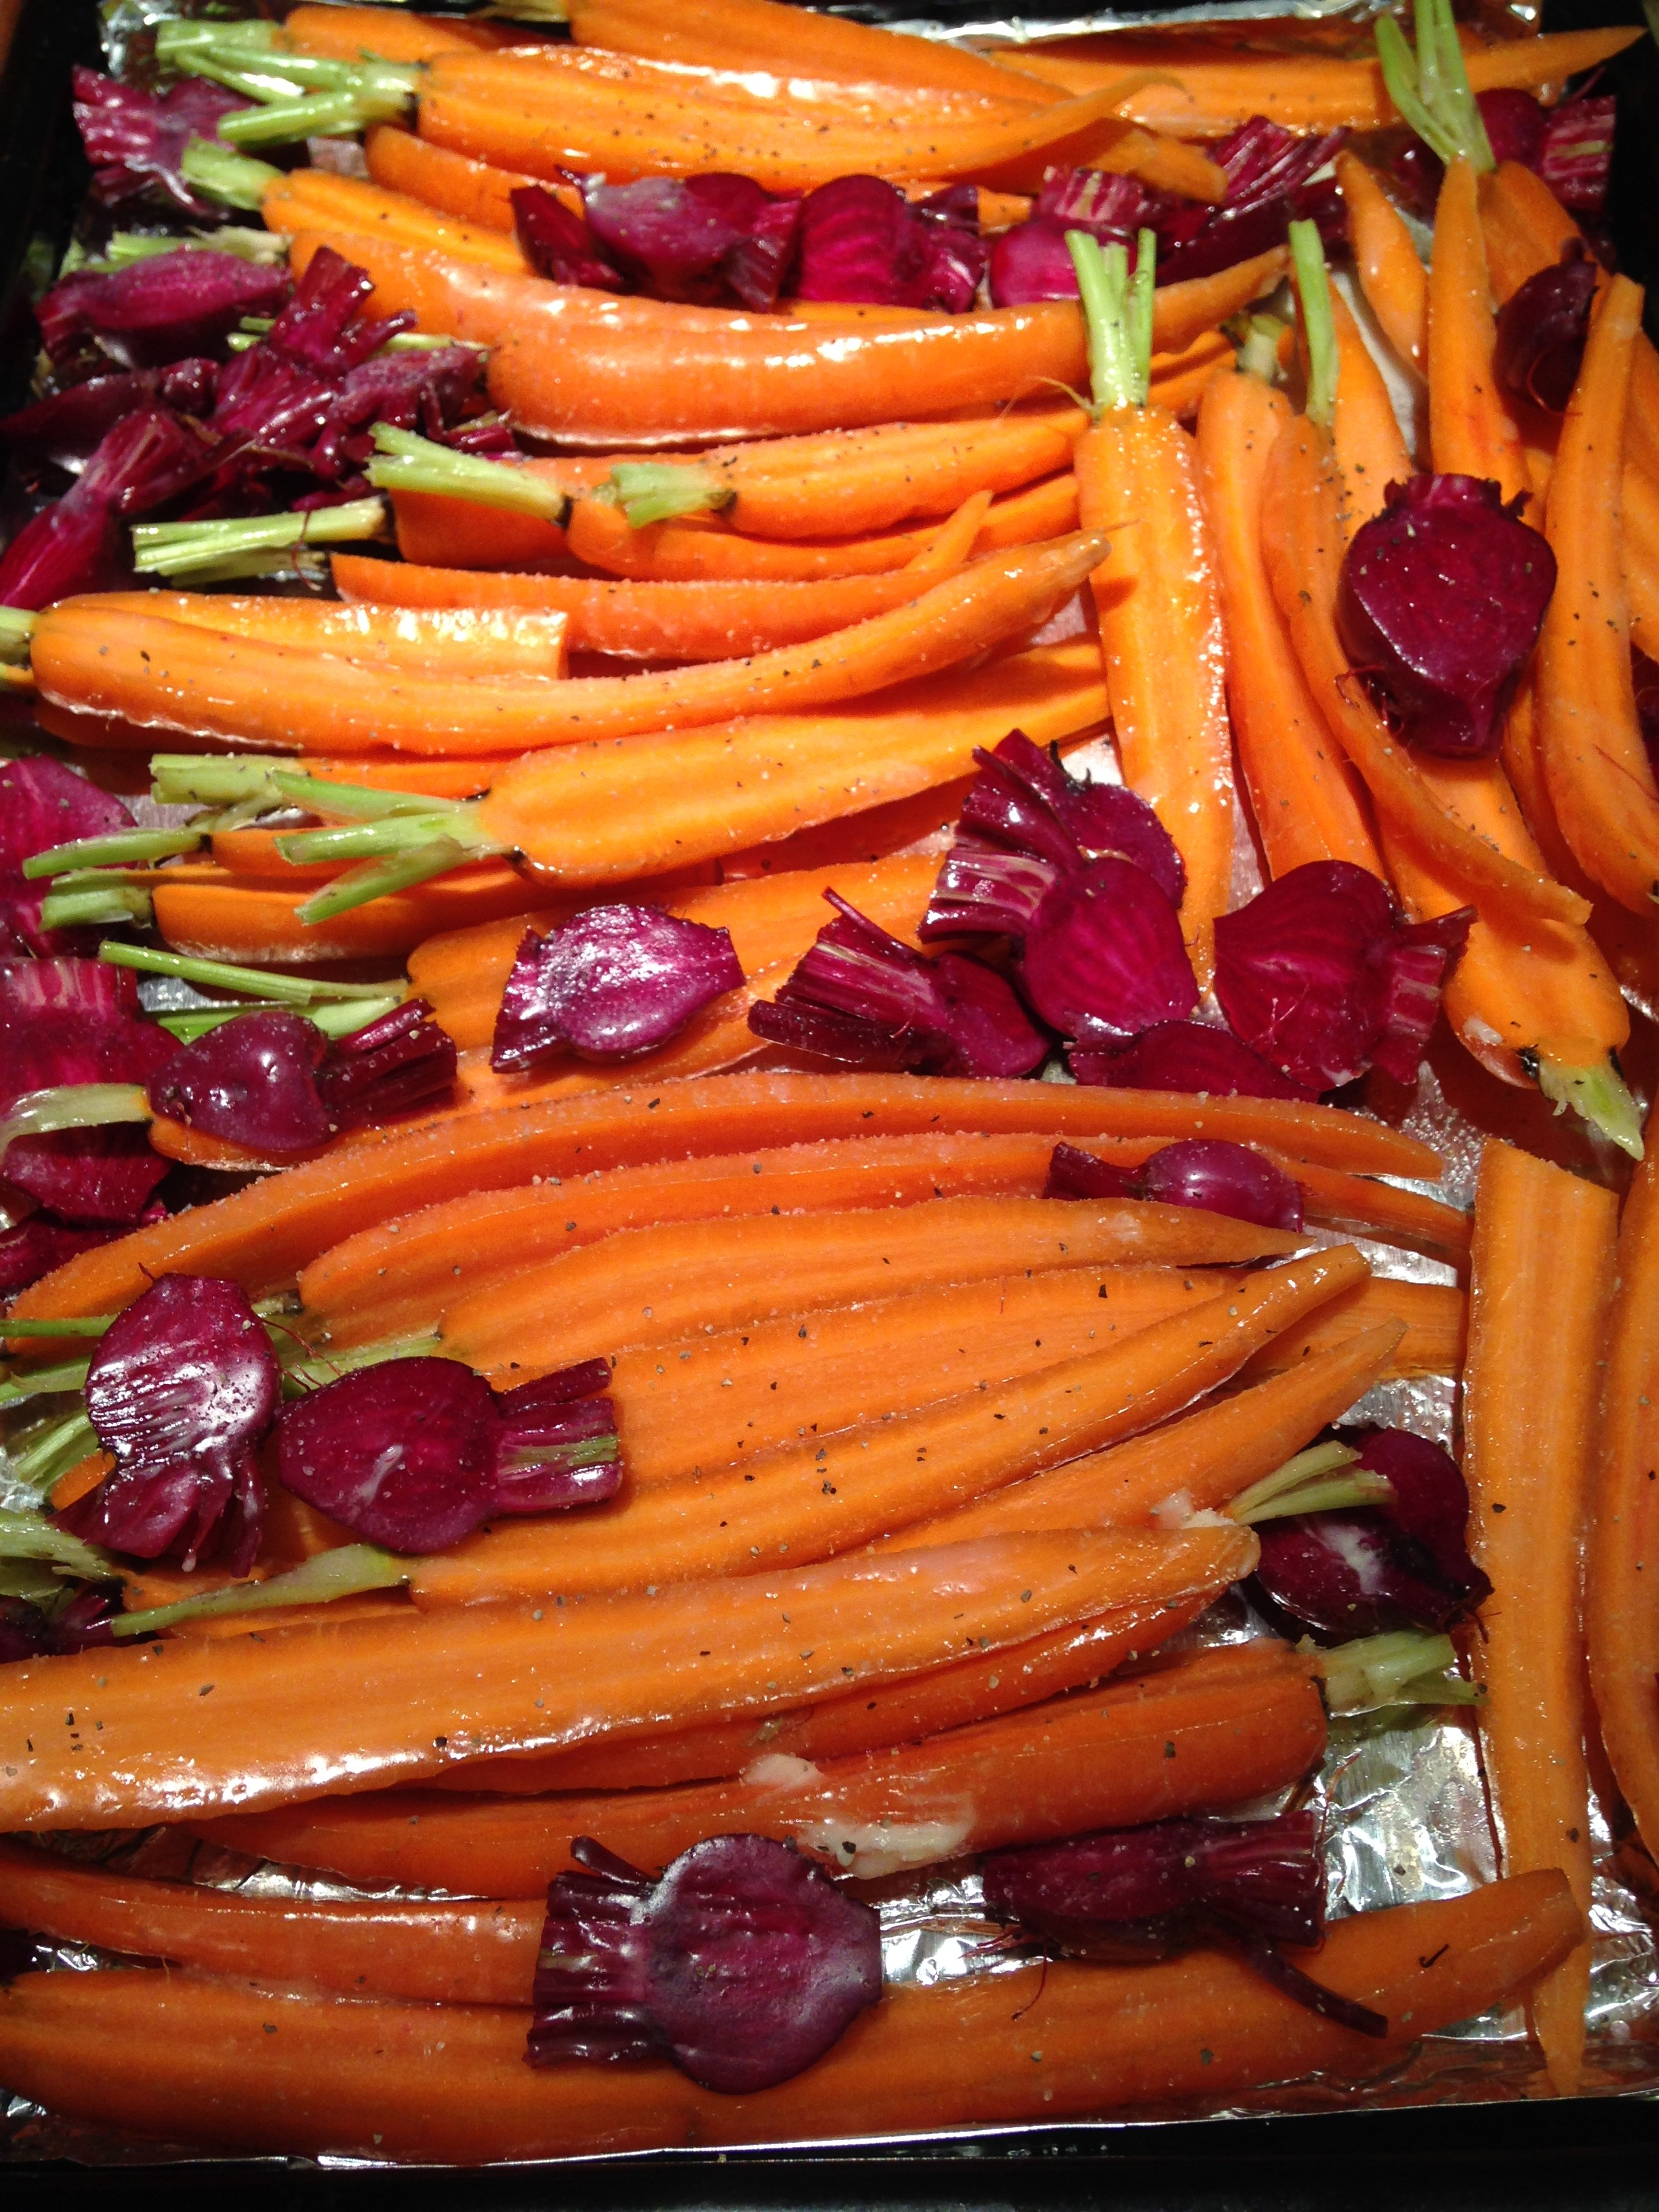 carmelized fresh beets and carrots with stems